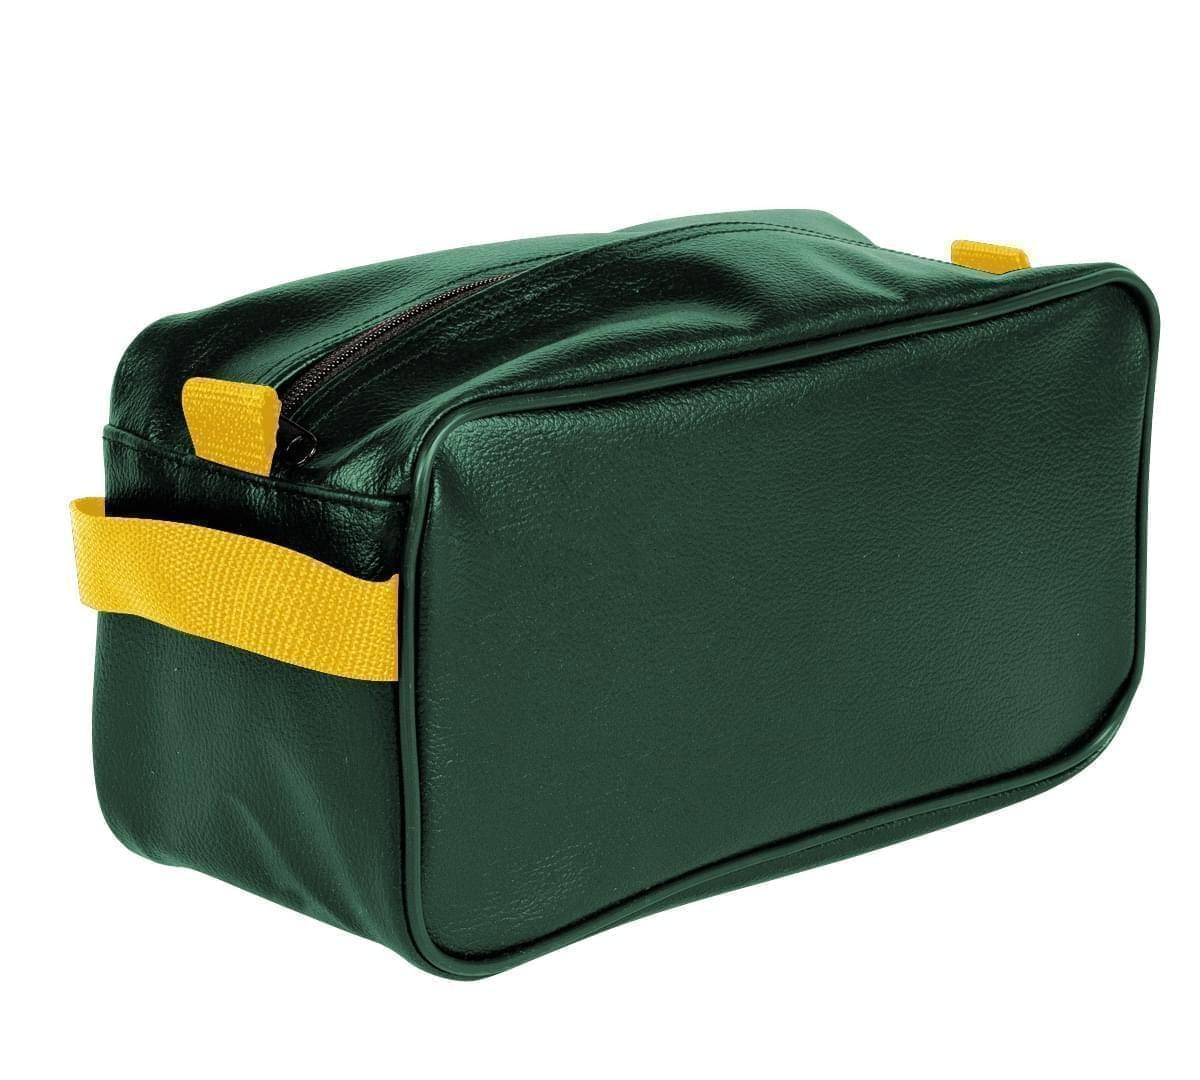 USA Made Cosmetic & Toiletry Cases, Hunter Green-Gold, 3000996-AS5